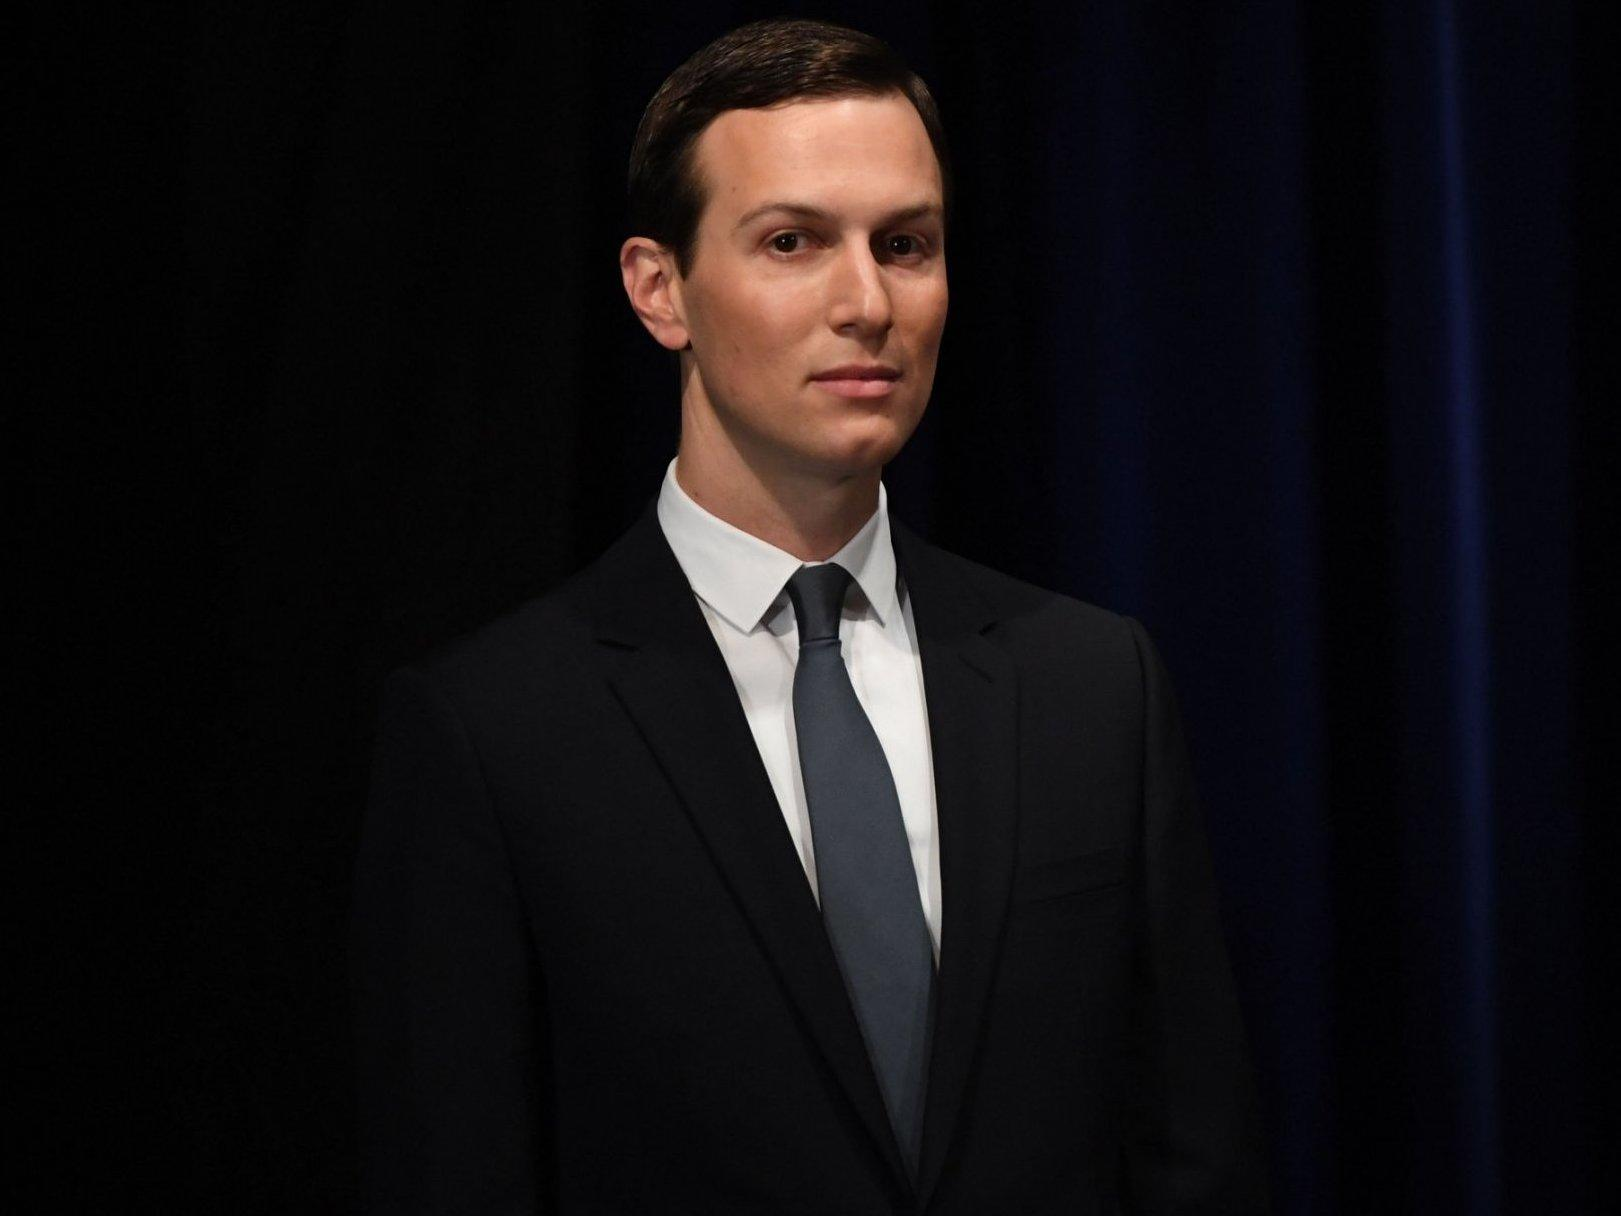 Jared Kushner 'granted top-level security clearance against advice of White House specialists'